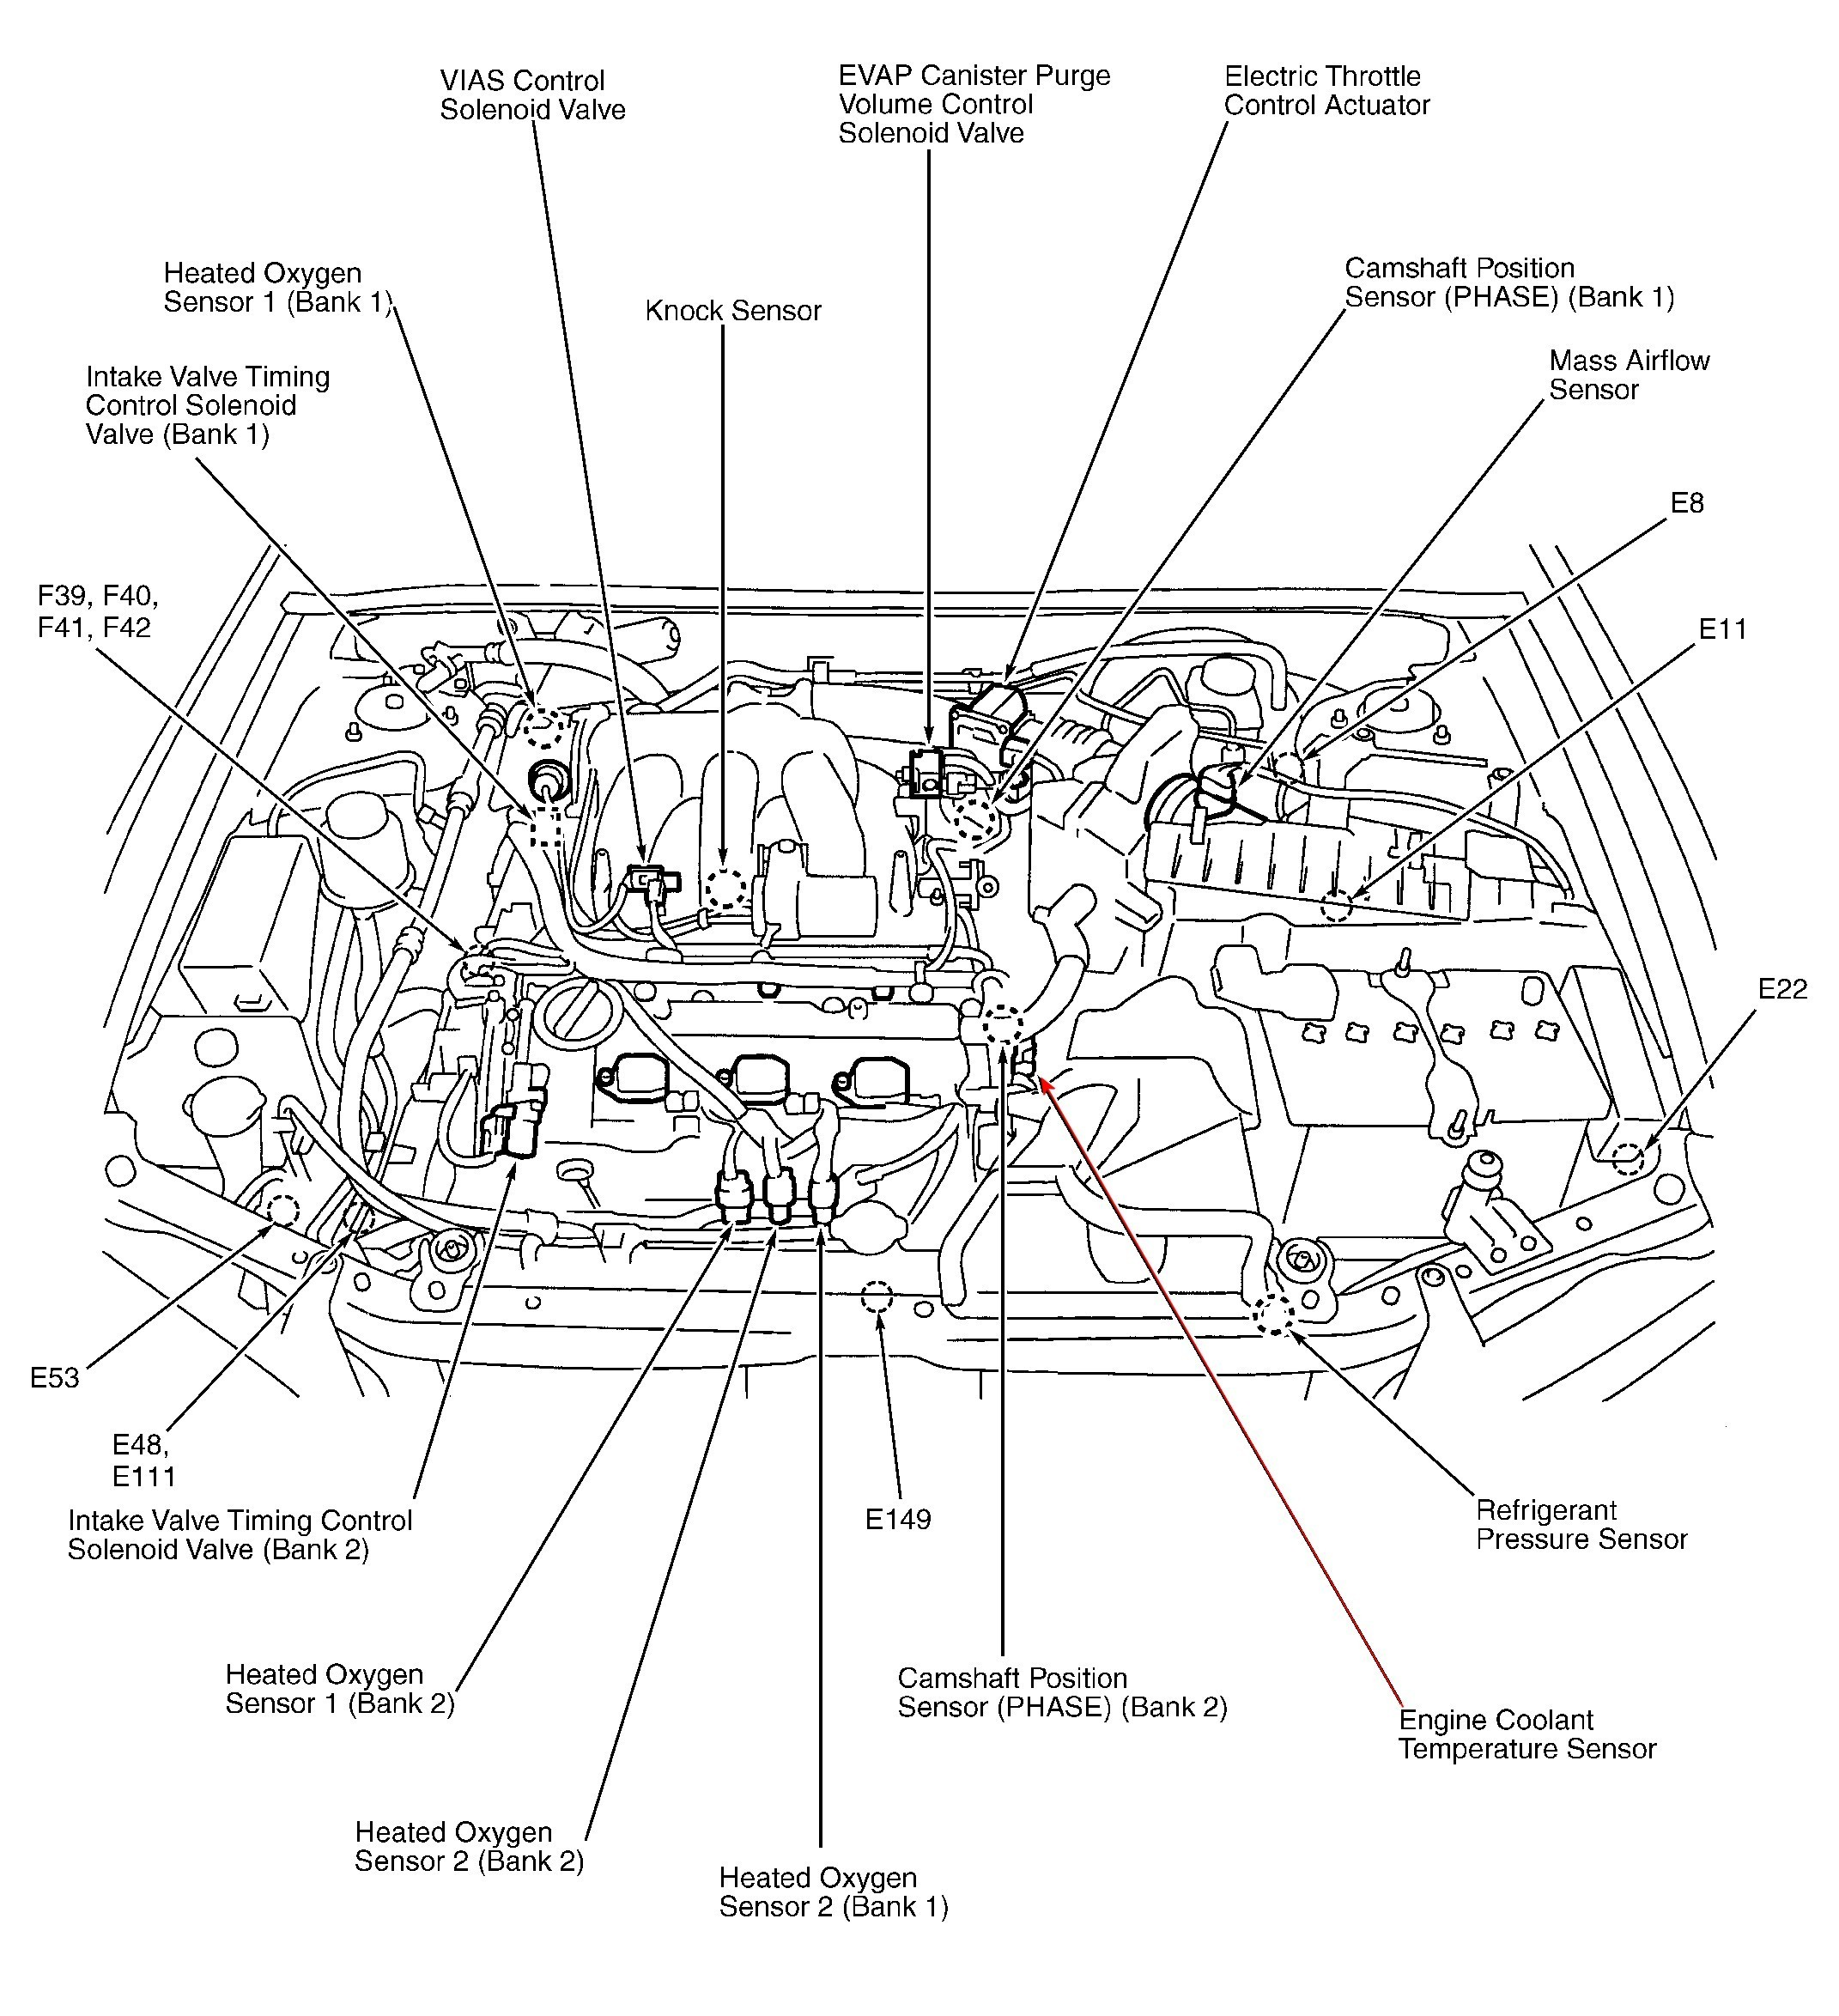 [WRG-5568] 2005 Subaru Legacy Engine Parts Diagram